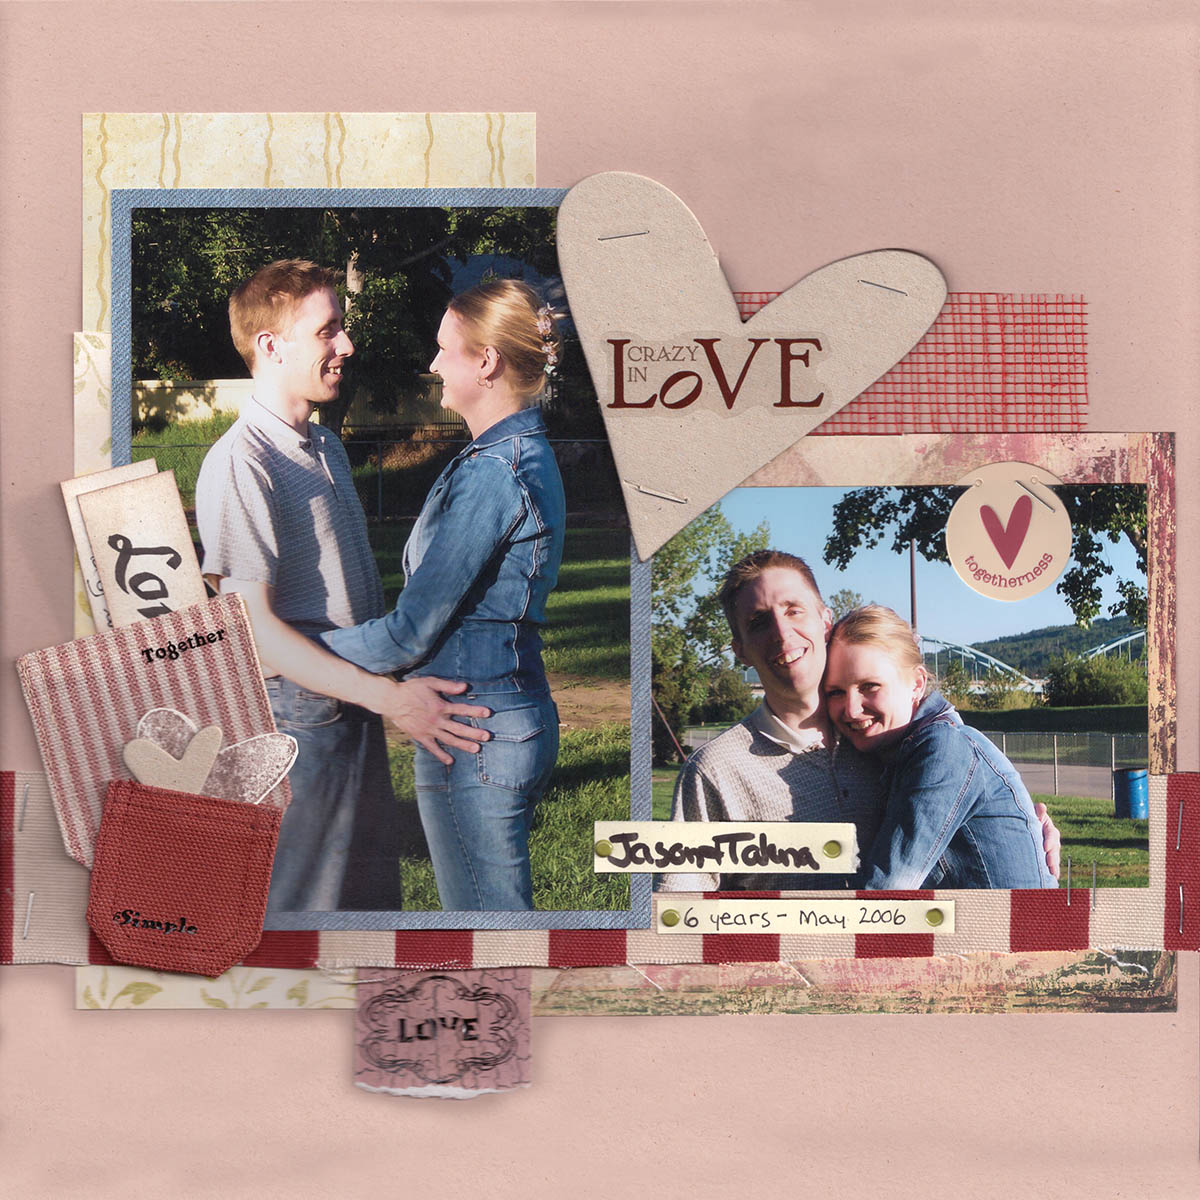 Jason and Talena ten years ago, paper scrapbooking layout (which is usually framed on our wall)